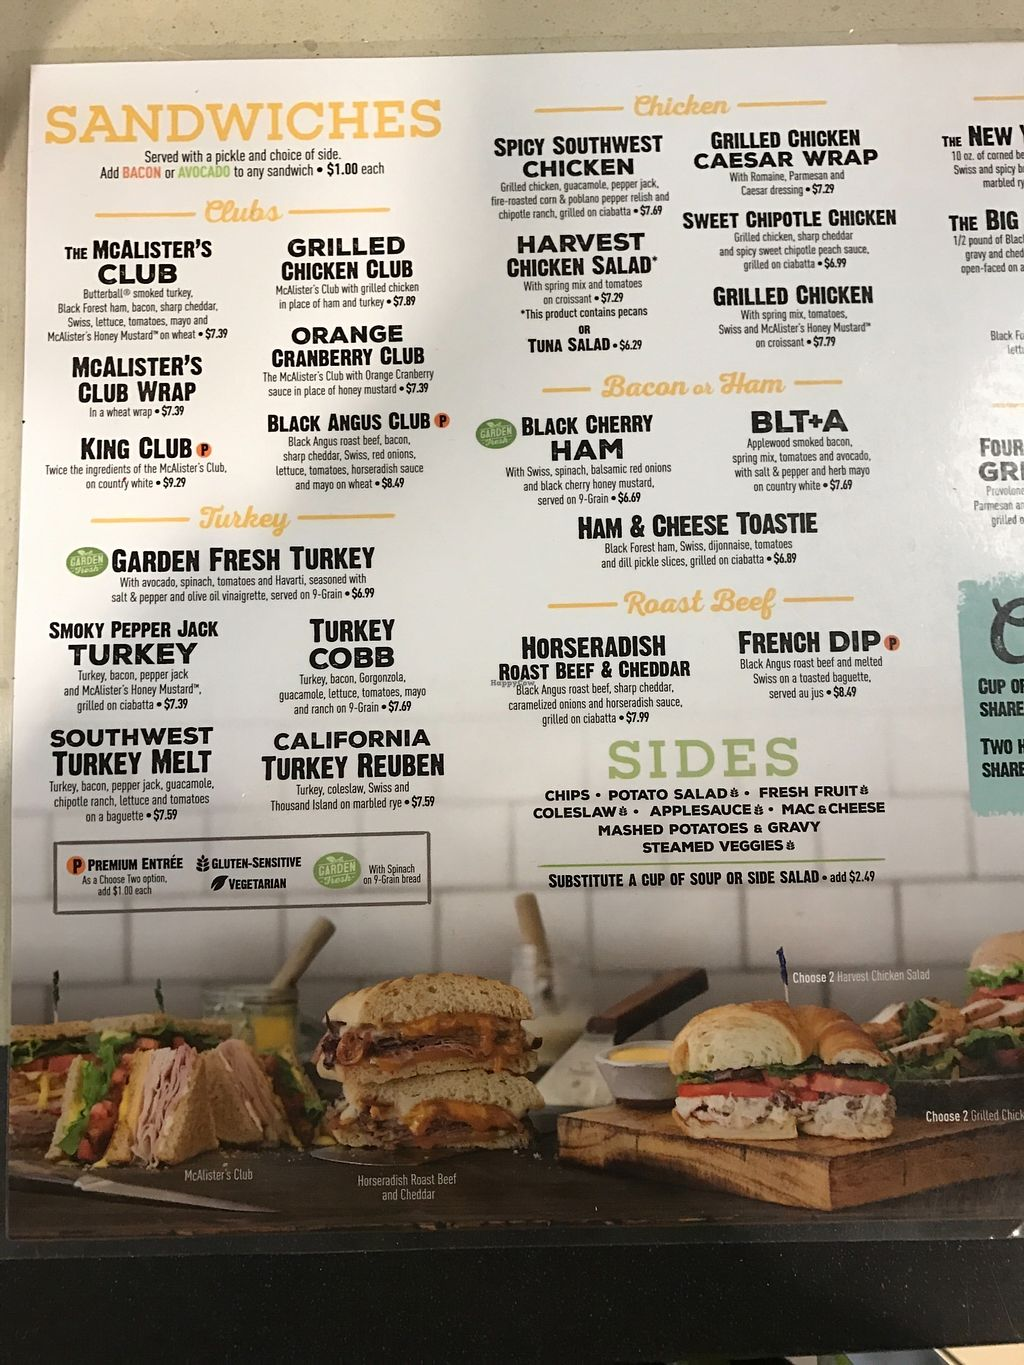 """Photo of McAlister's Deli  by <a href=""""/members/profile/Mmaynard18"""">Mmaynard18</a> <br/>Vegan soup option that's not listed on menu <br/> March 25, 2018  - <a href='/contact/abuse/image/115590/375920'>Report</a>"""